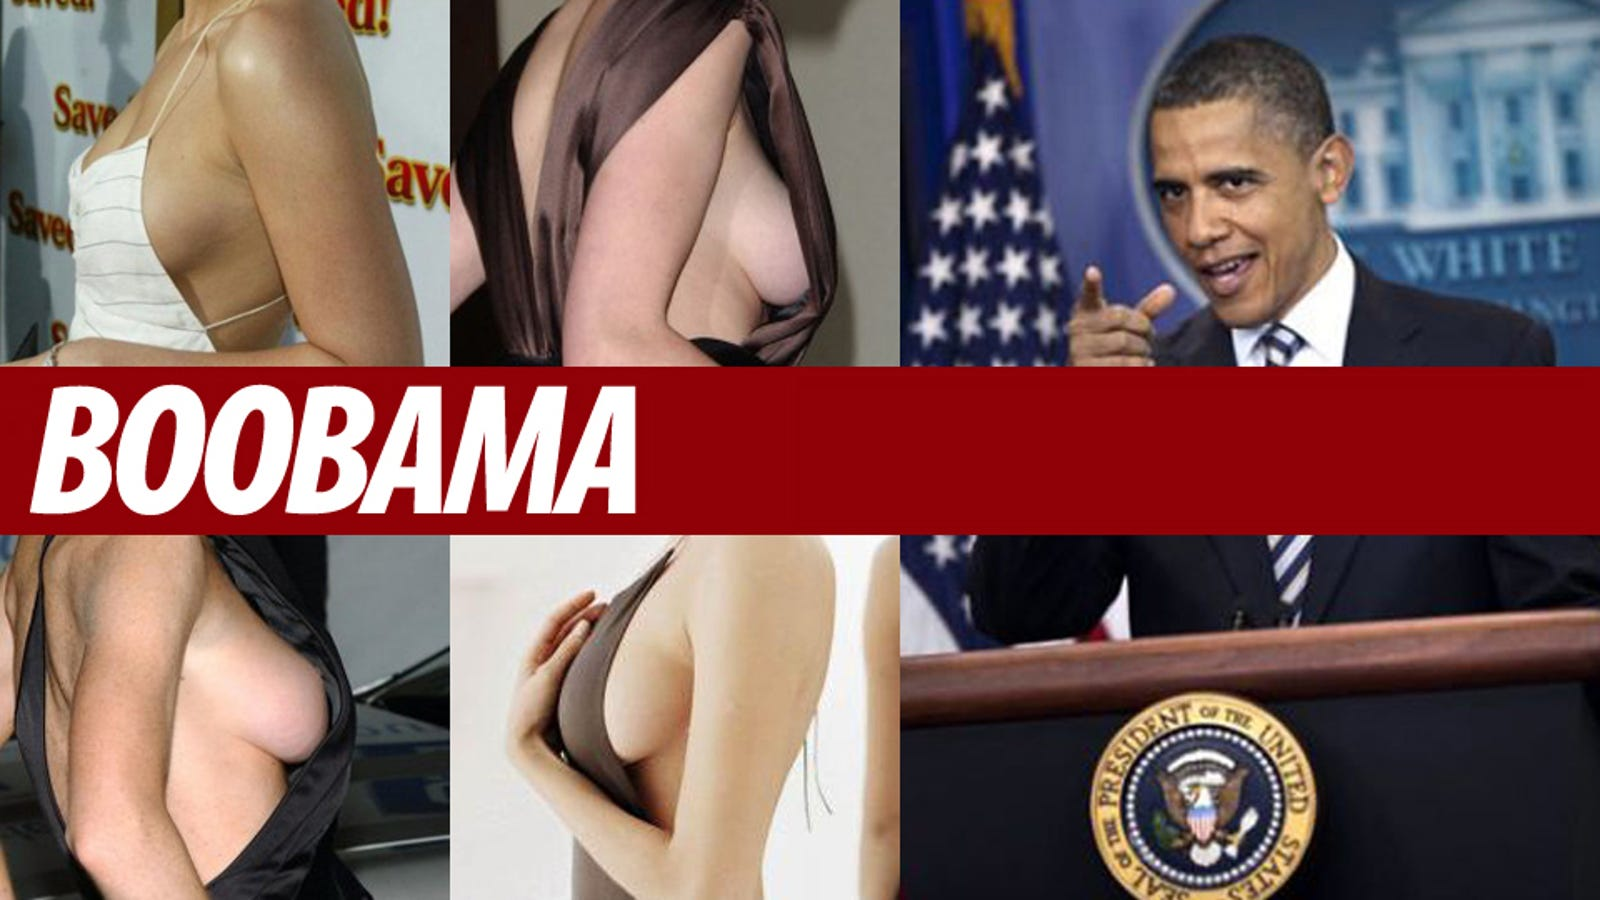 Barack Obama Porn barack obama follows erotic website on twitter